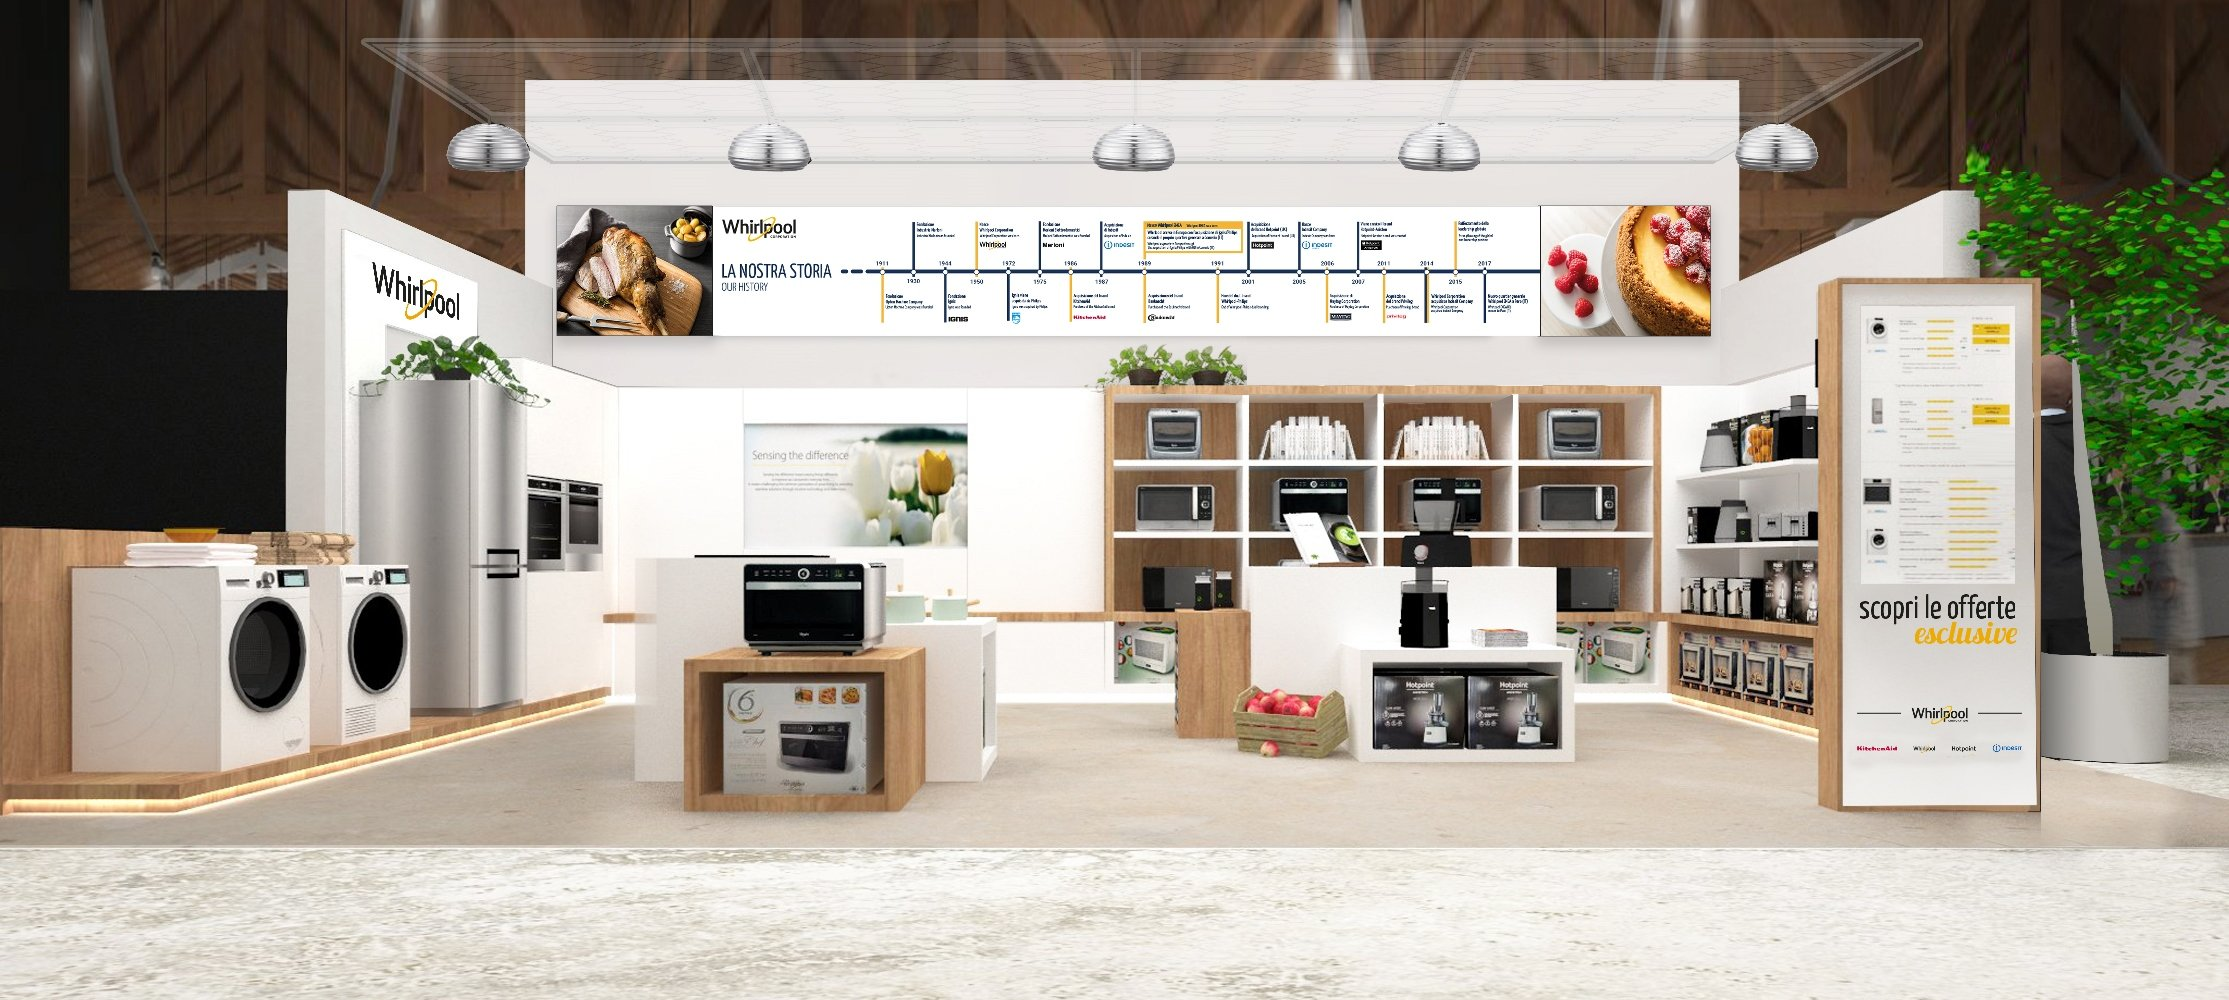 Whirlpool Italia with Eataly in support of Italian Quality: FICO - Fabbrica Italiana Contadina